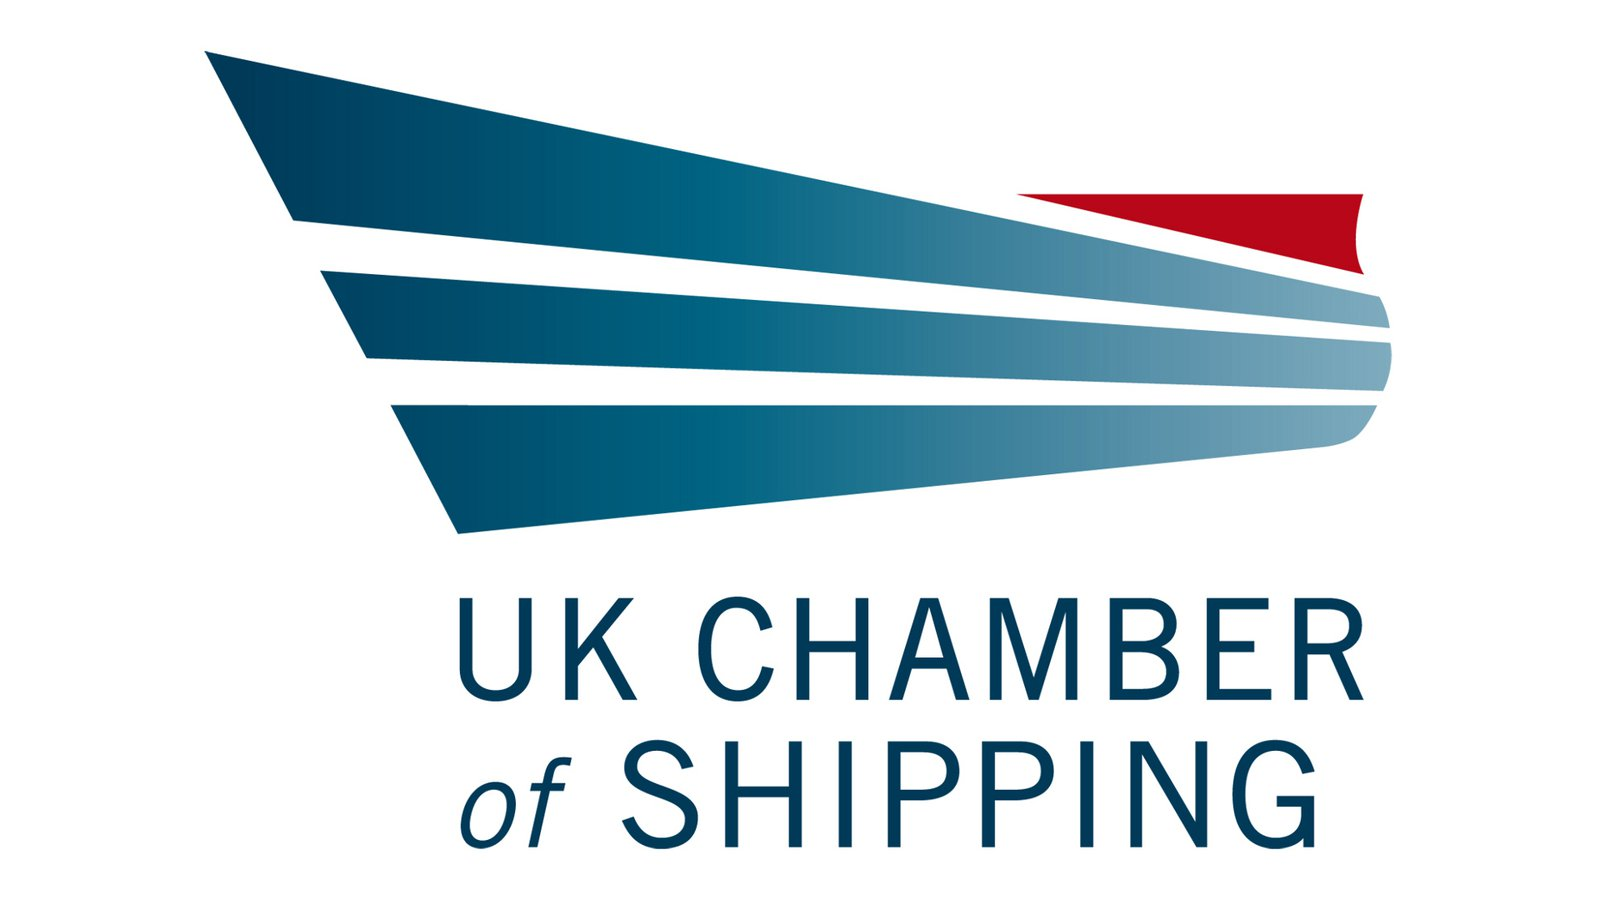 UK Chamber of Shipping logo